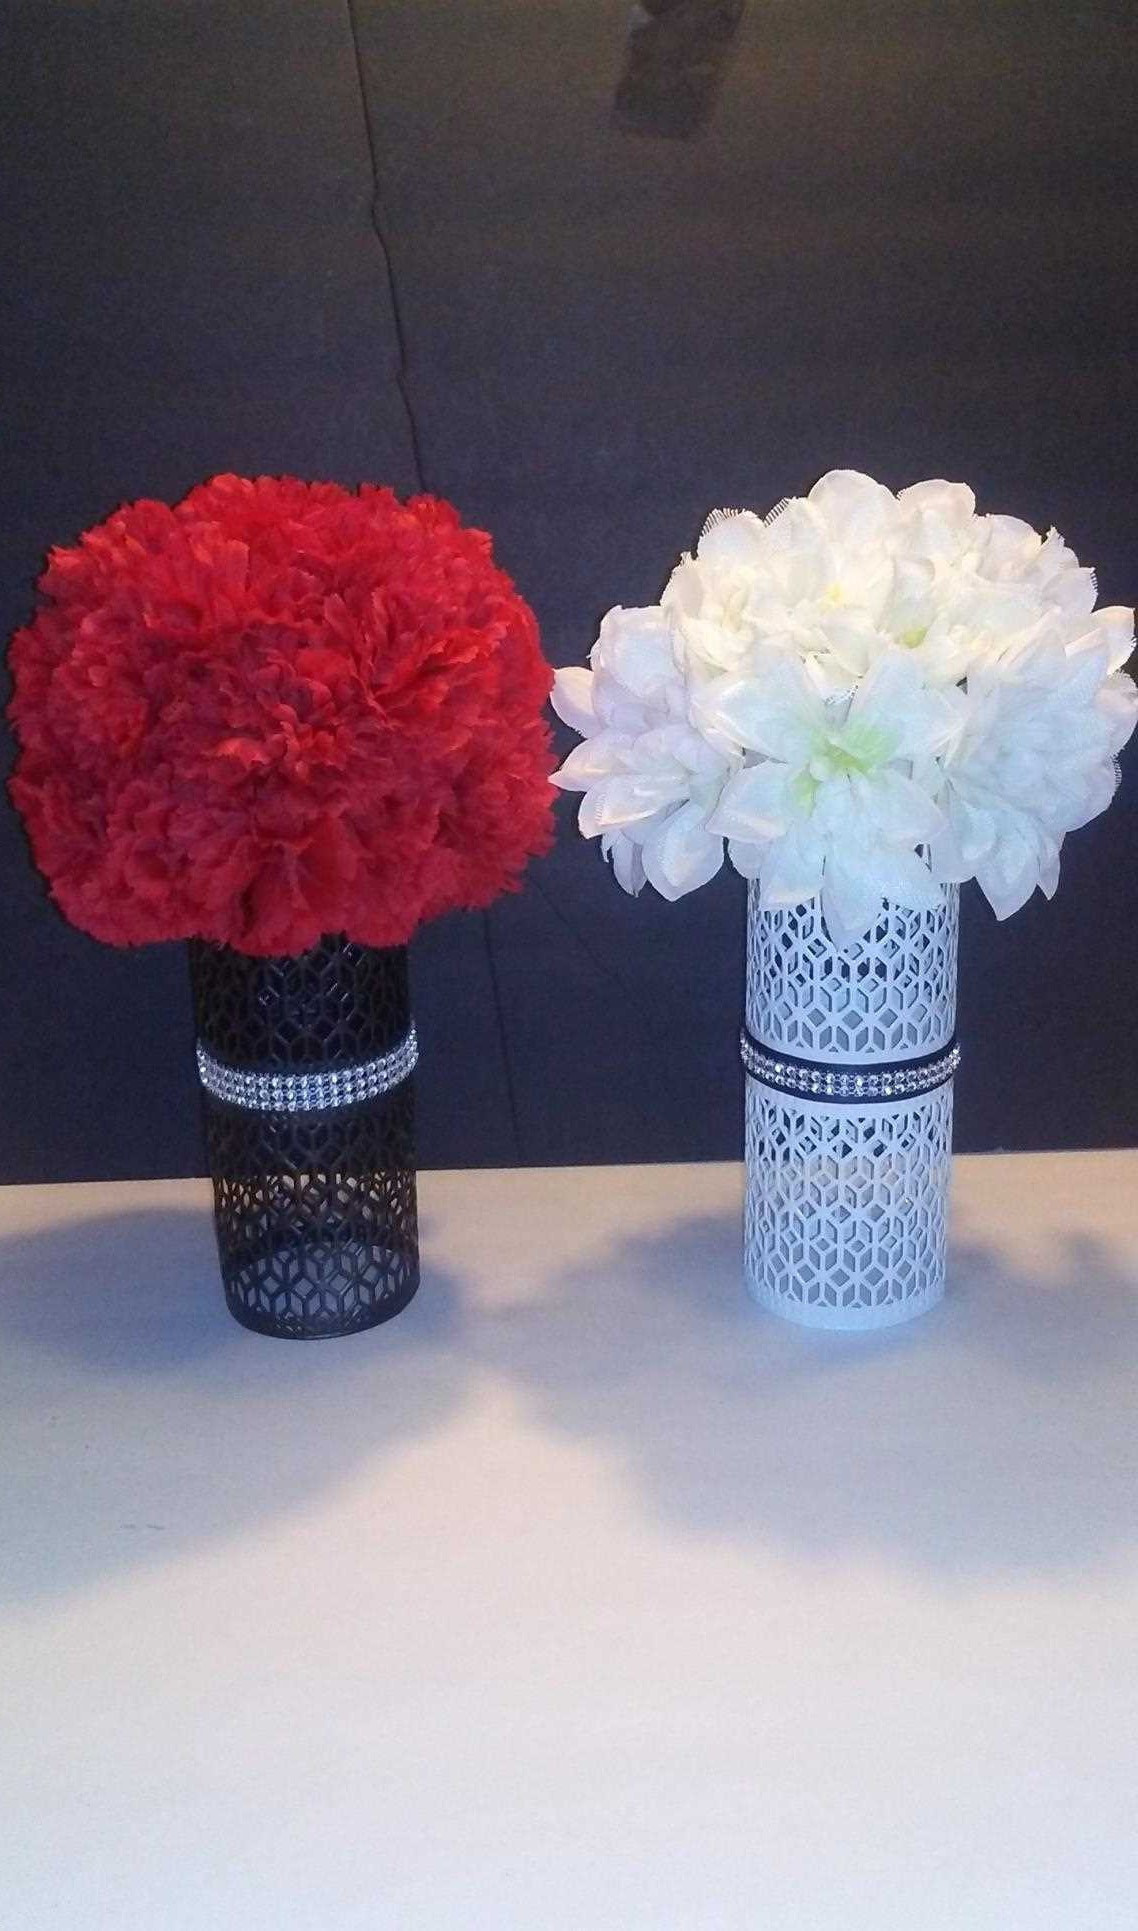 12 attractive Candy Bar Vase Arrangements 2021 free download candy bar vase arrangements of decoration 1 an beau dollar tree wedding decorations awesome h vases pertaining to decoration 1 an ganial 47 awesome wedding tree decorations of decoration 1 a